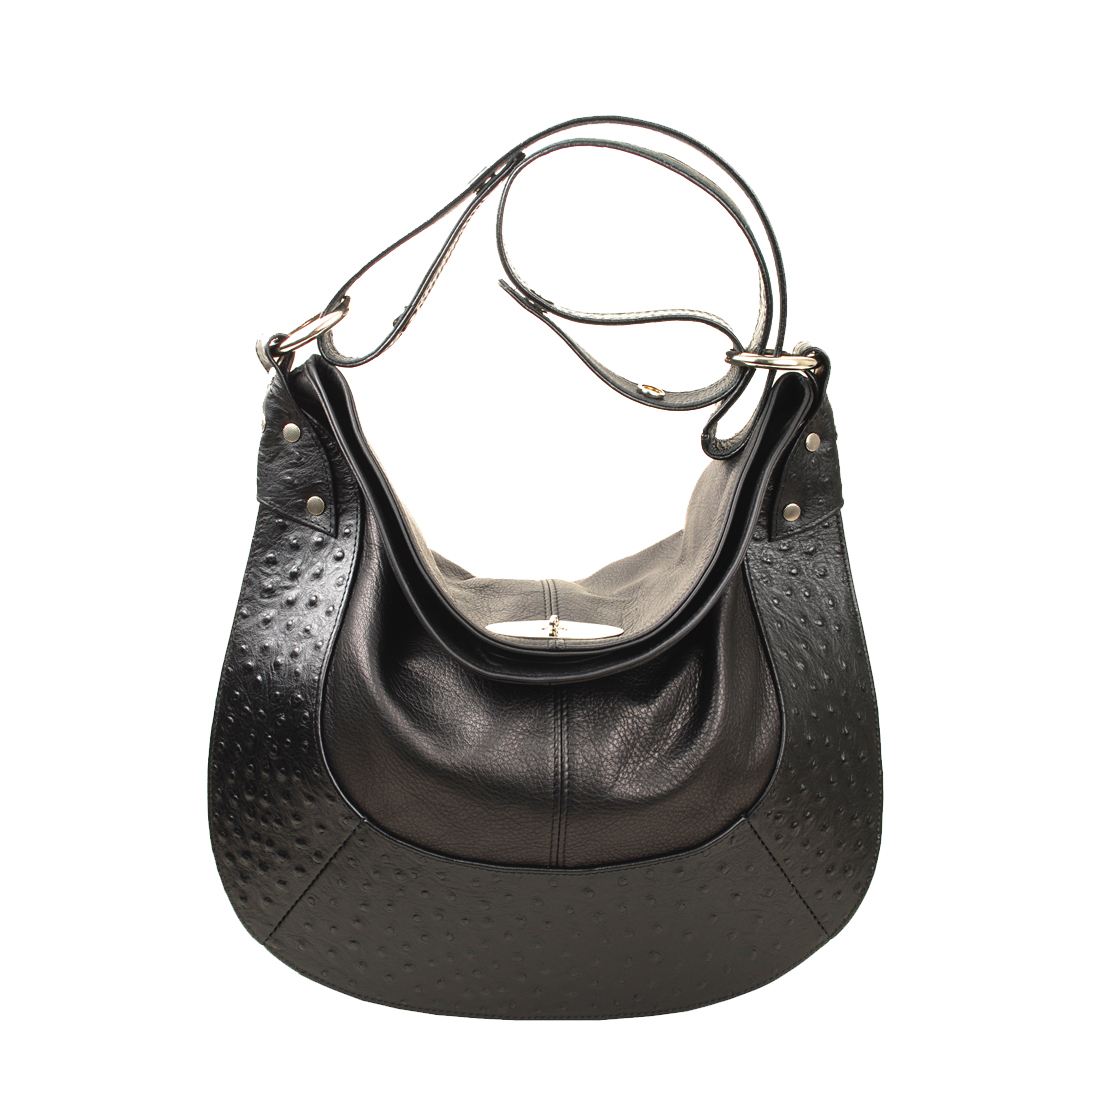 Large Horse Shoe Black Leather Shoudler Bag